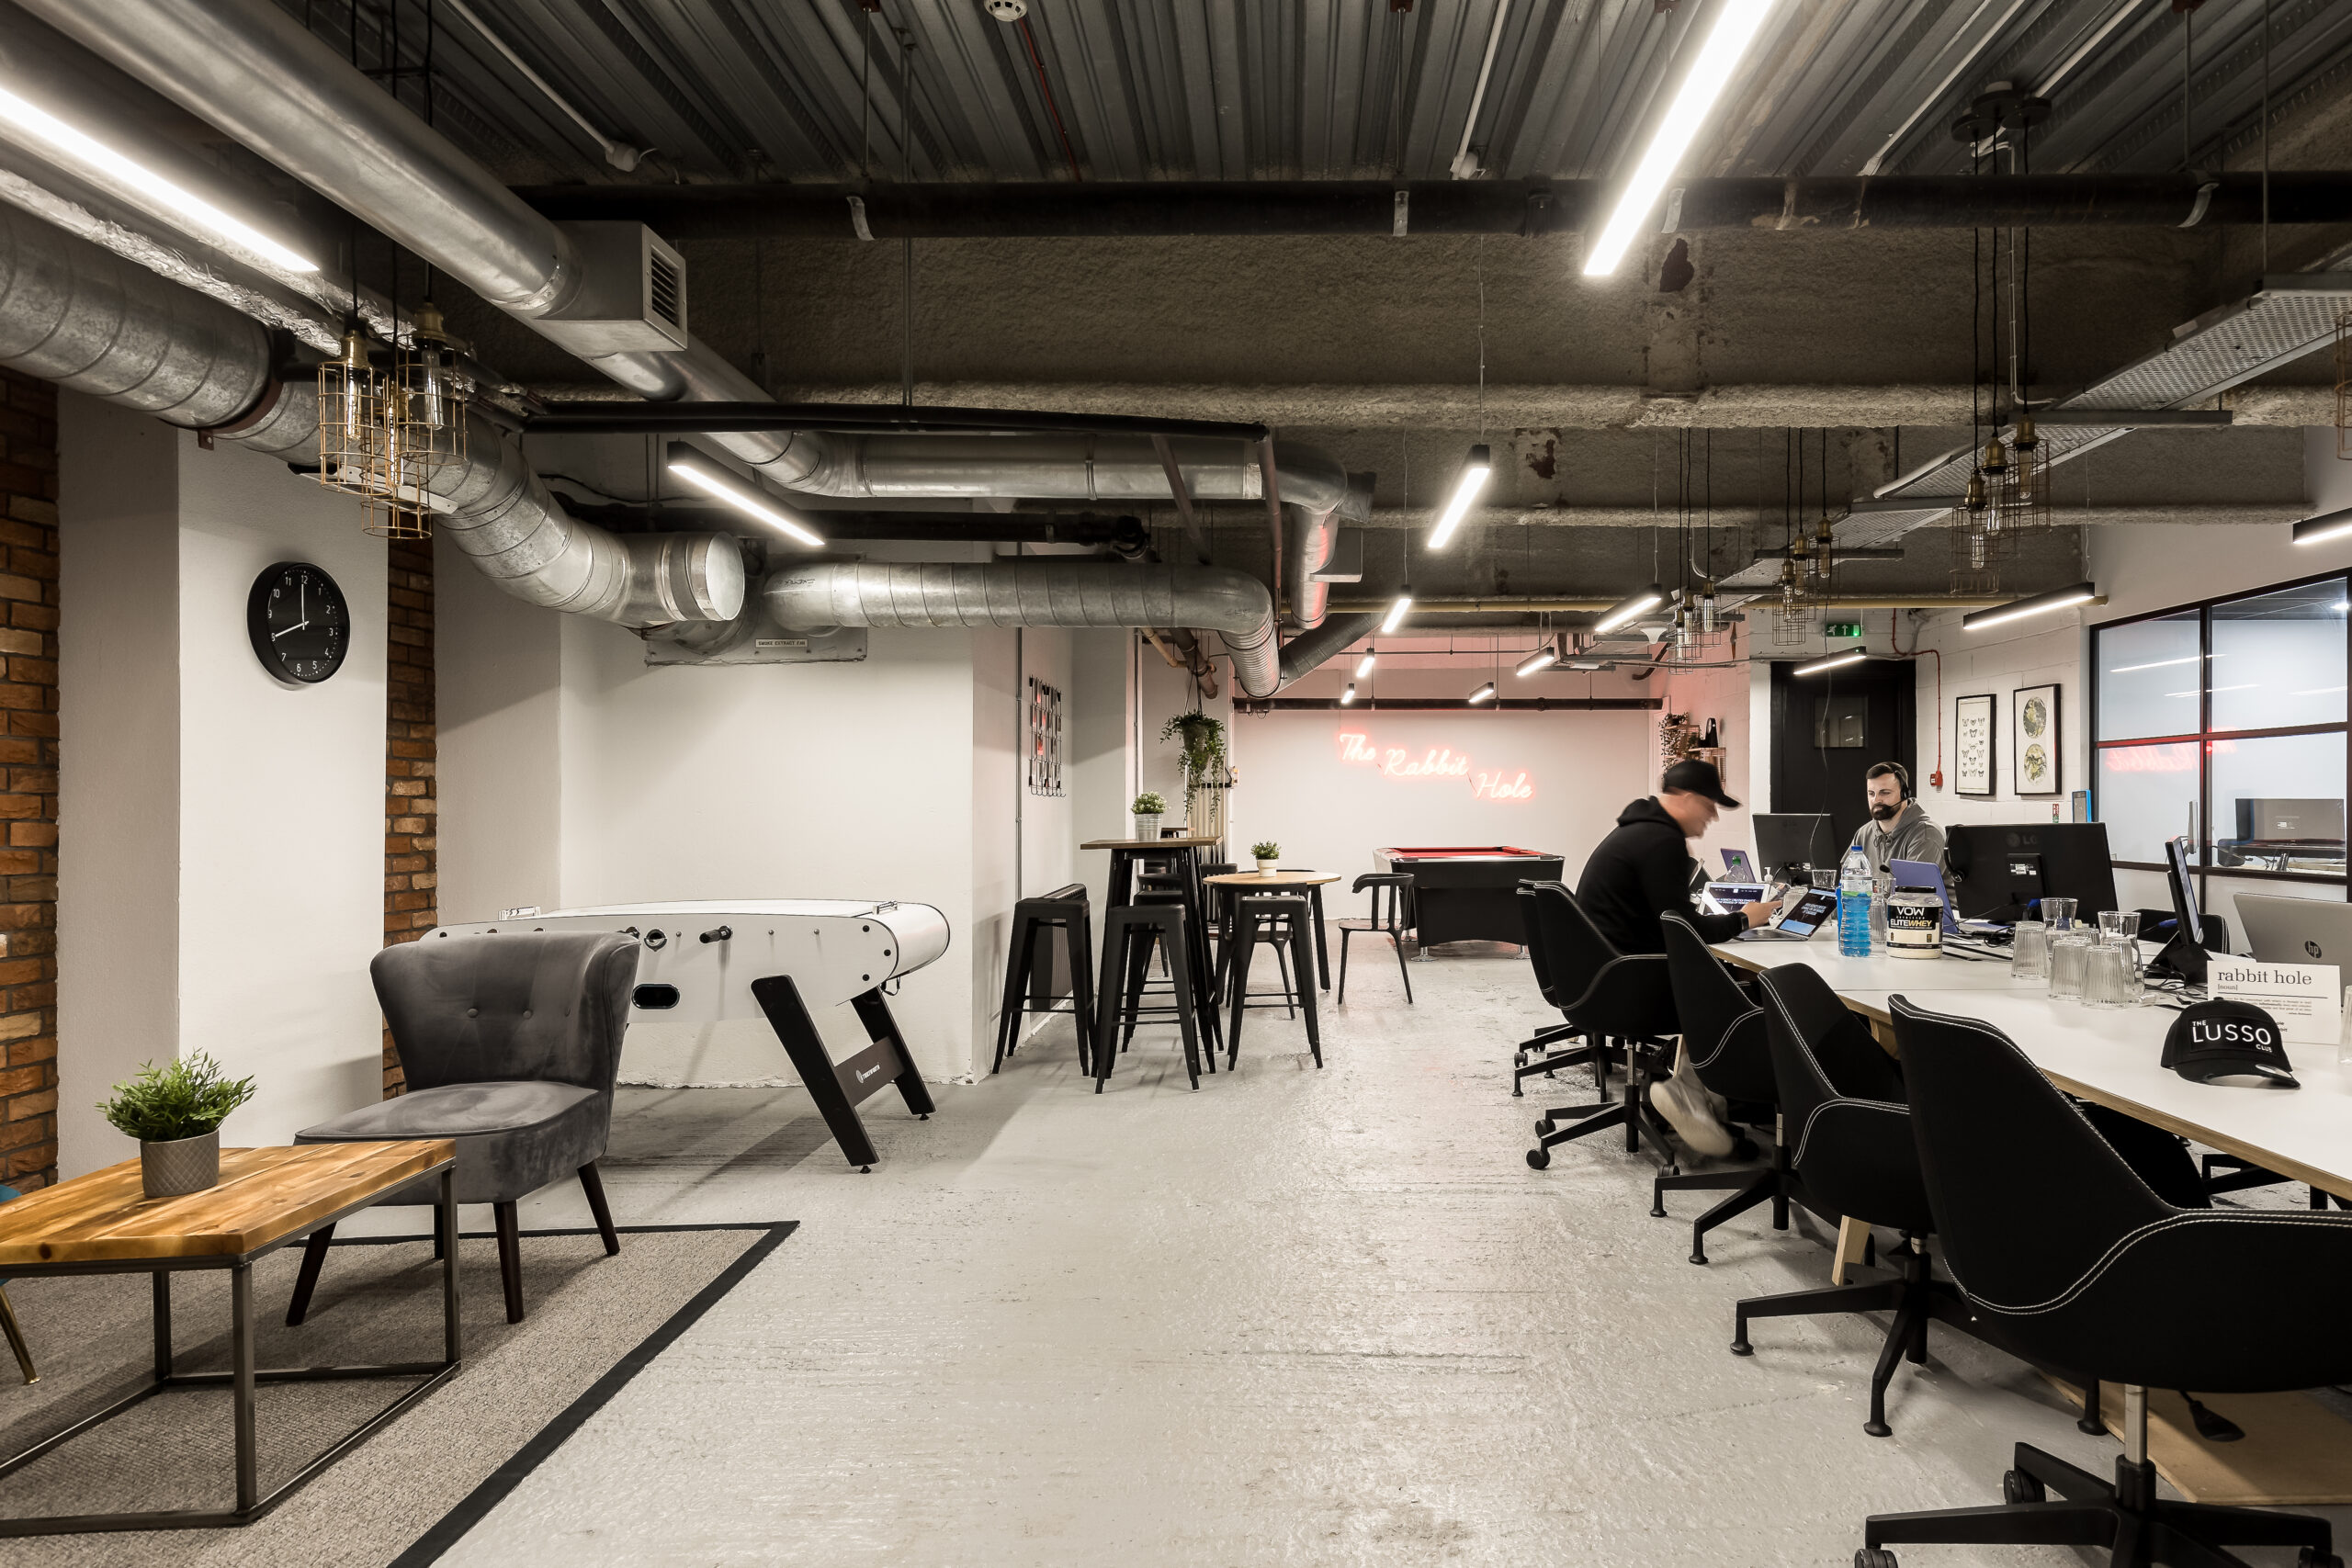 The appeal of the coworking office